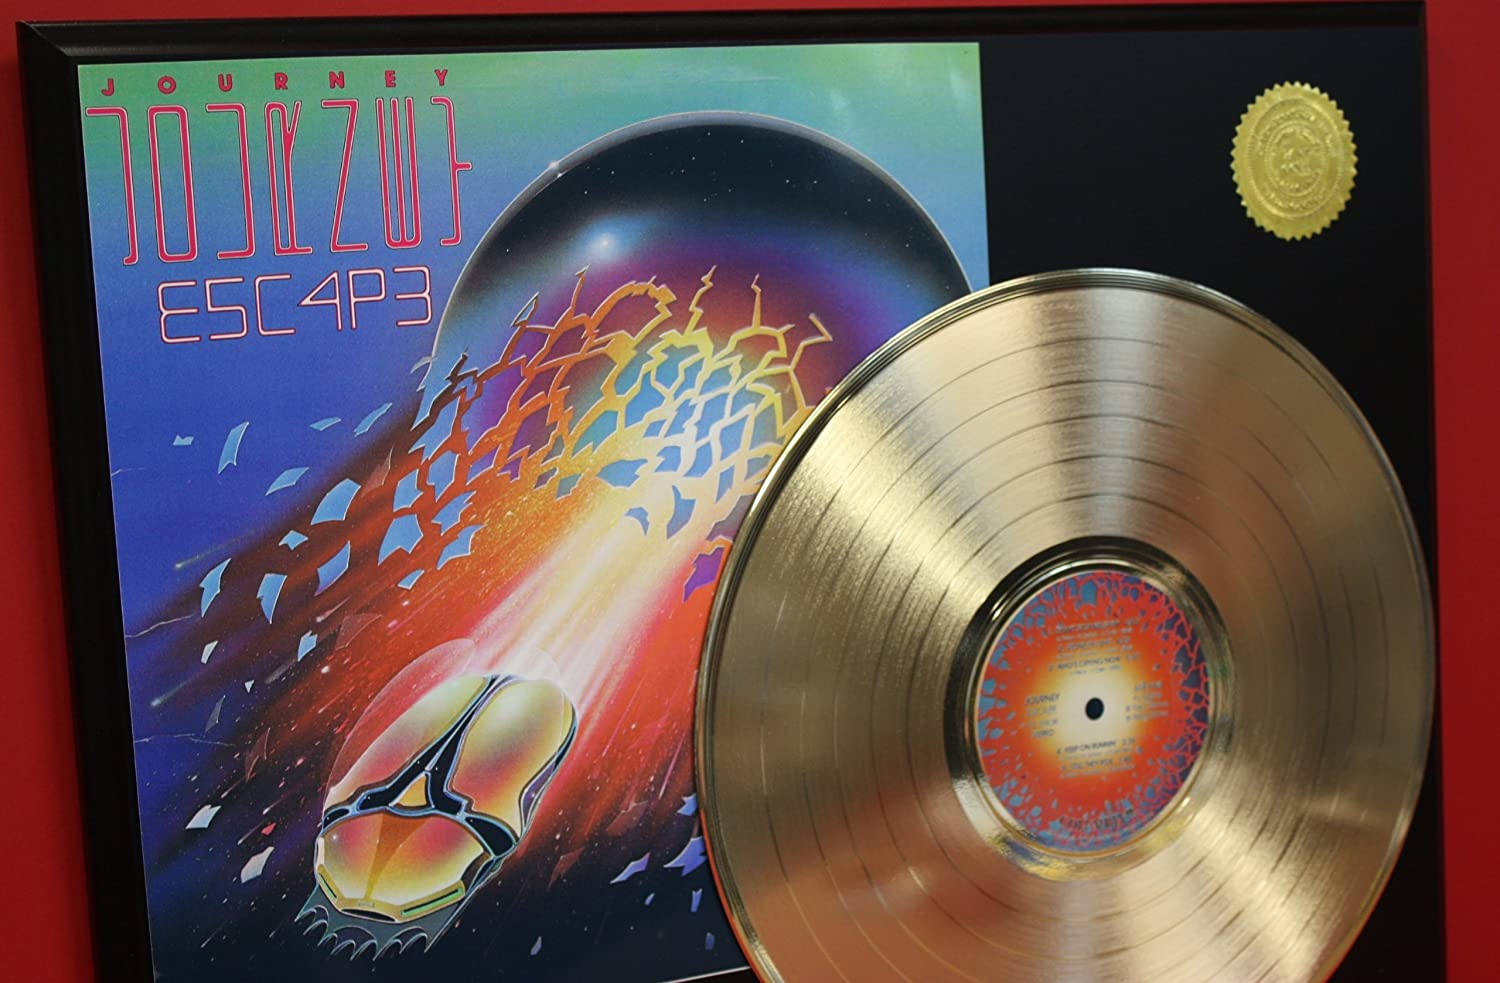 Journey E5C4P3 24Kt Gold LP Record LTD Edition Display